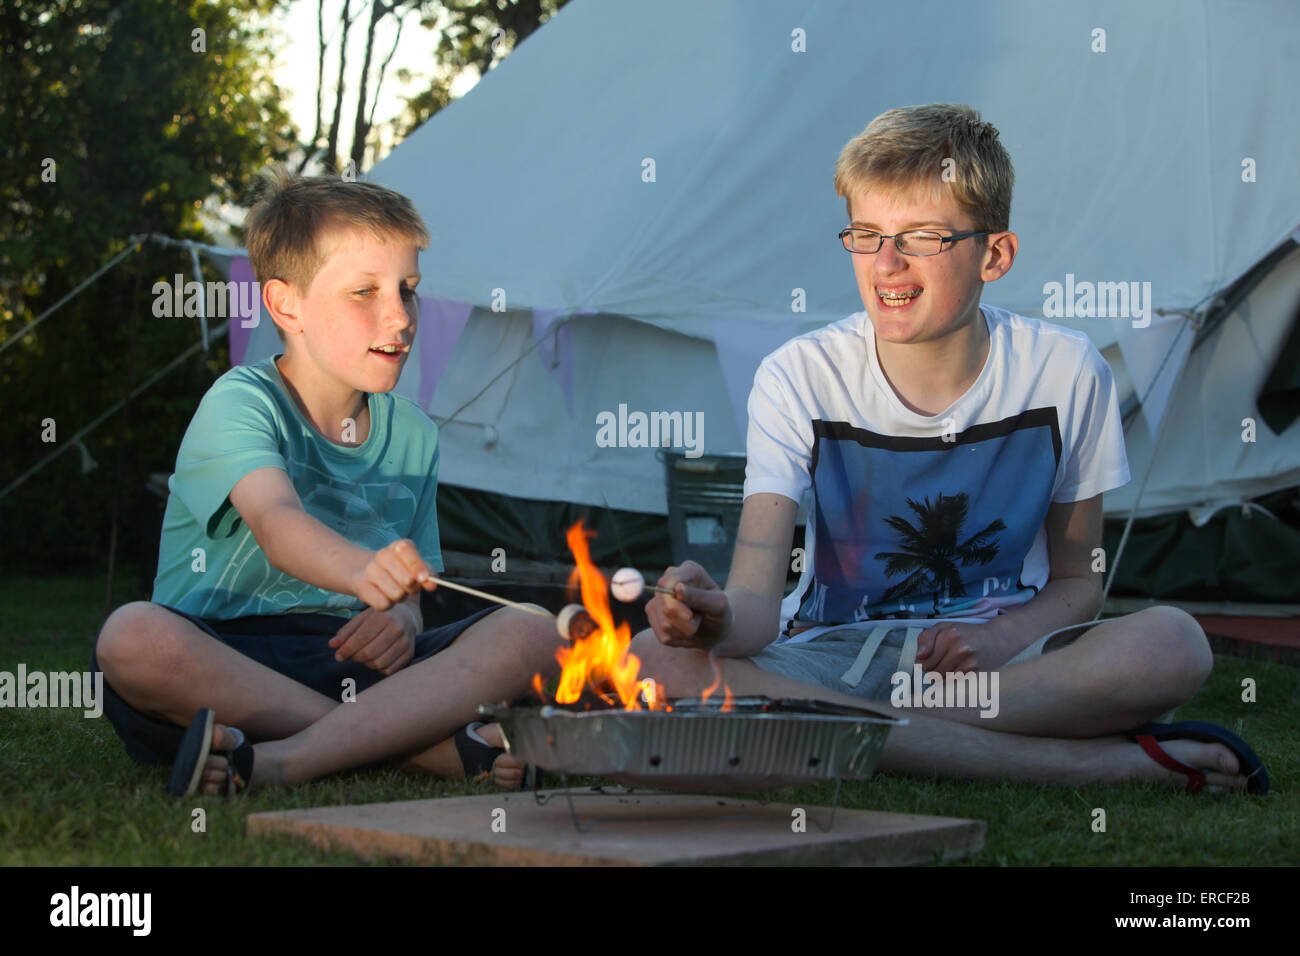 Children toasting marshmallows over a camp fire whilst glamping camping in the UK - Stock Image